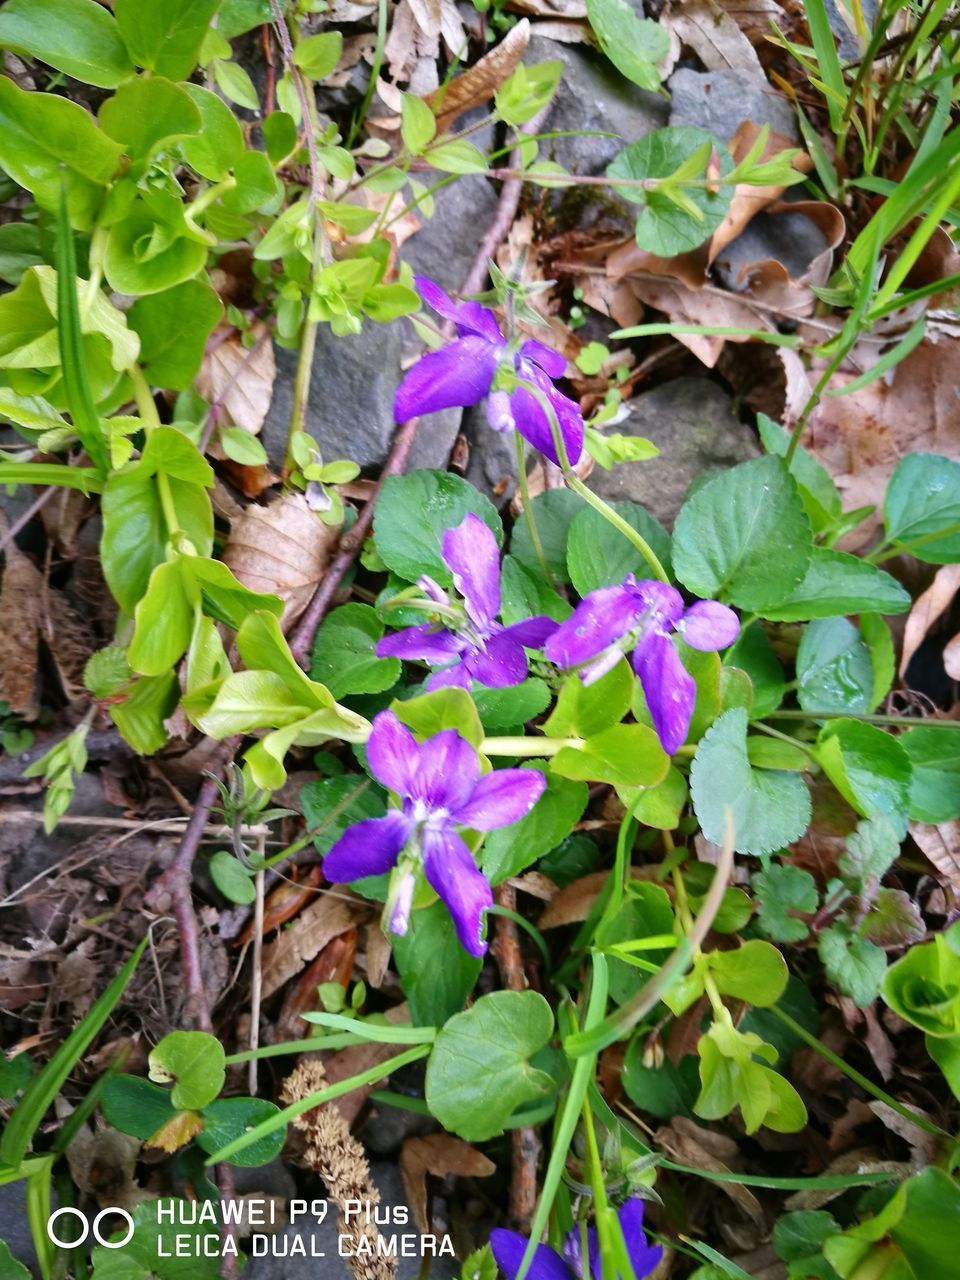 growth, plant, leaf, flower, fragility, nature, purple, green color, petal, outdoors, freshness, beauty in nature, day, no people, blooming, flower head, close-up